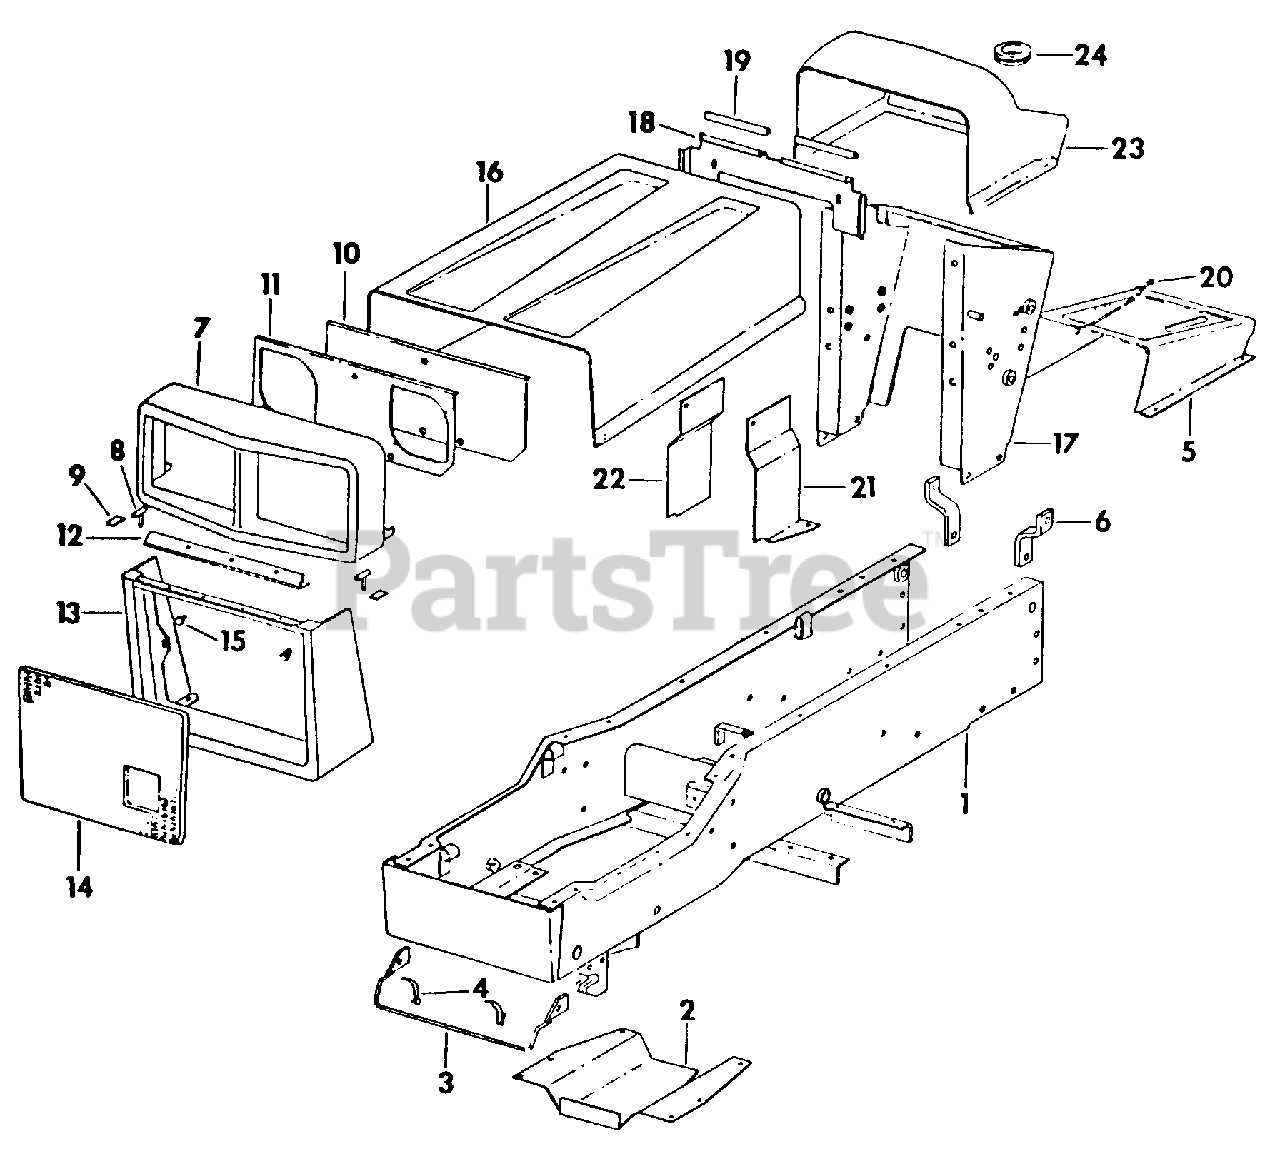 [DIAGRAM] Cub Cadet 129 Parts Diagram FULL Version HD